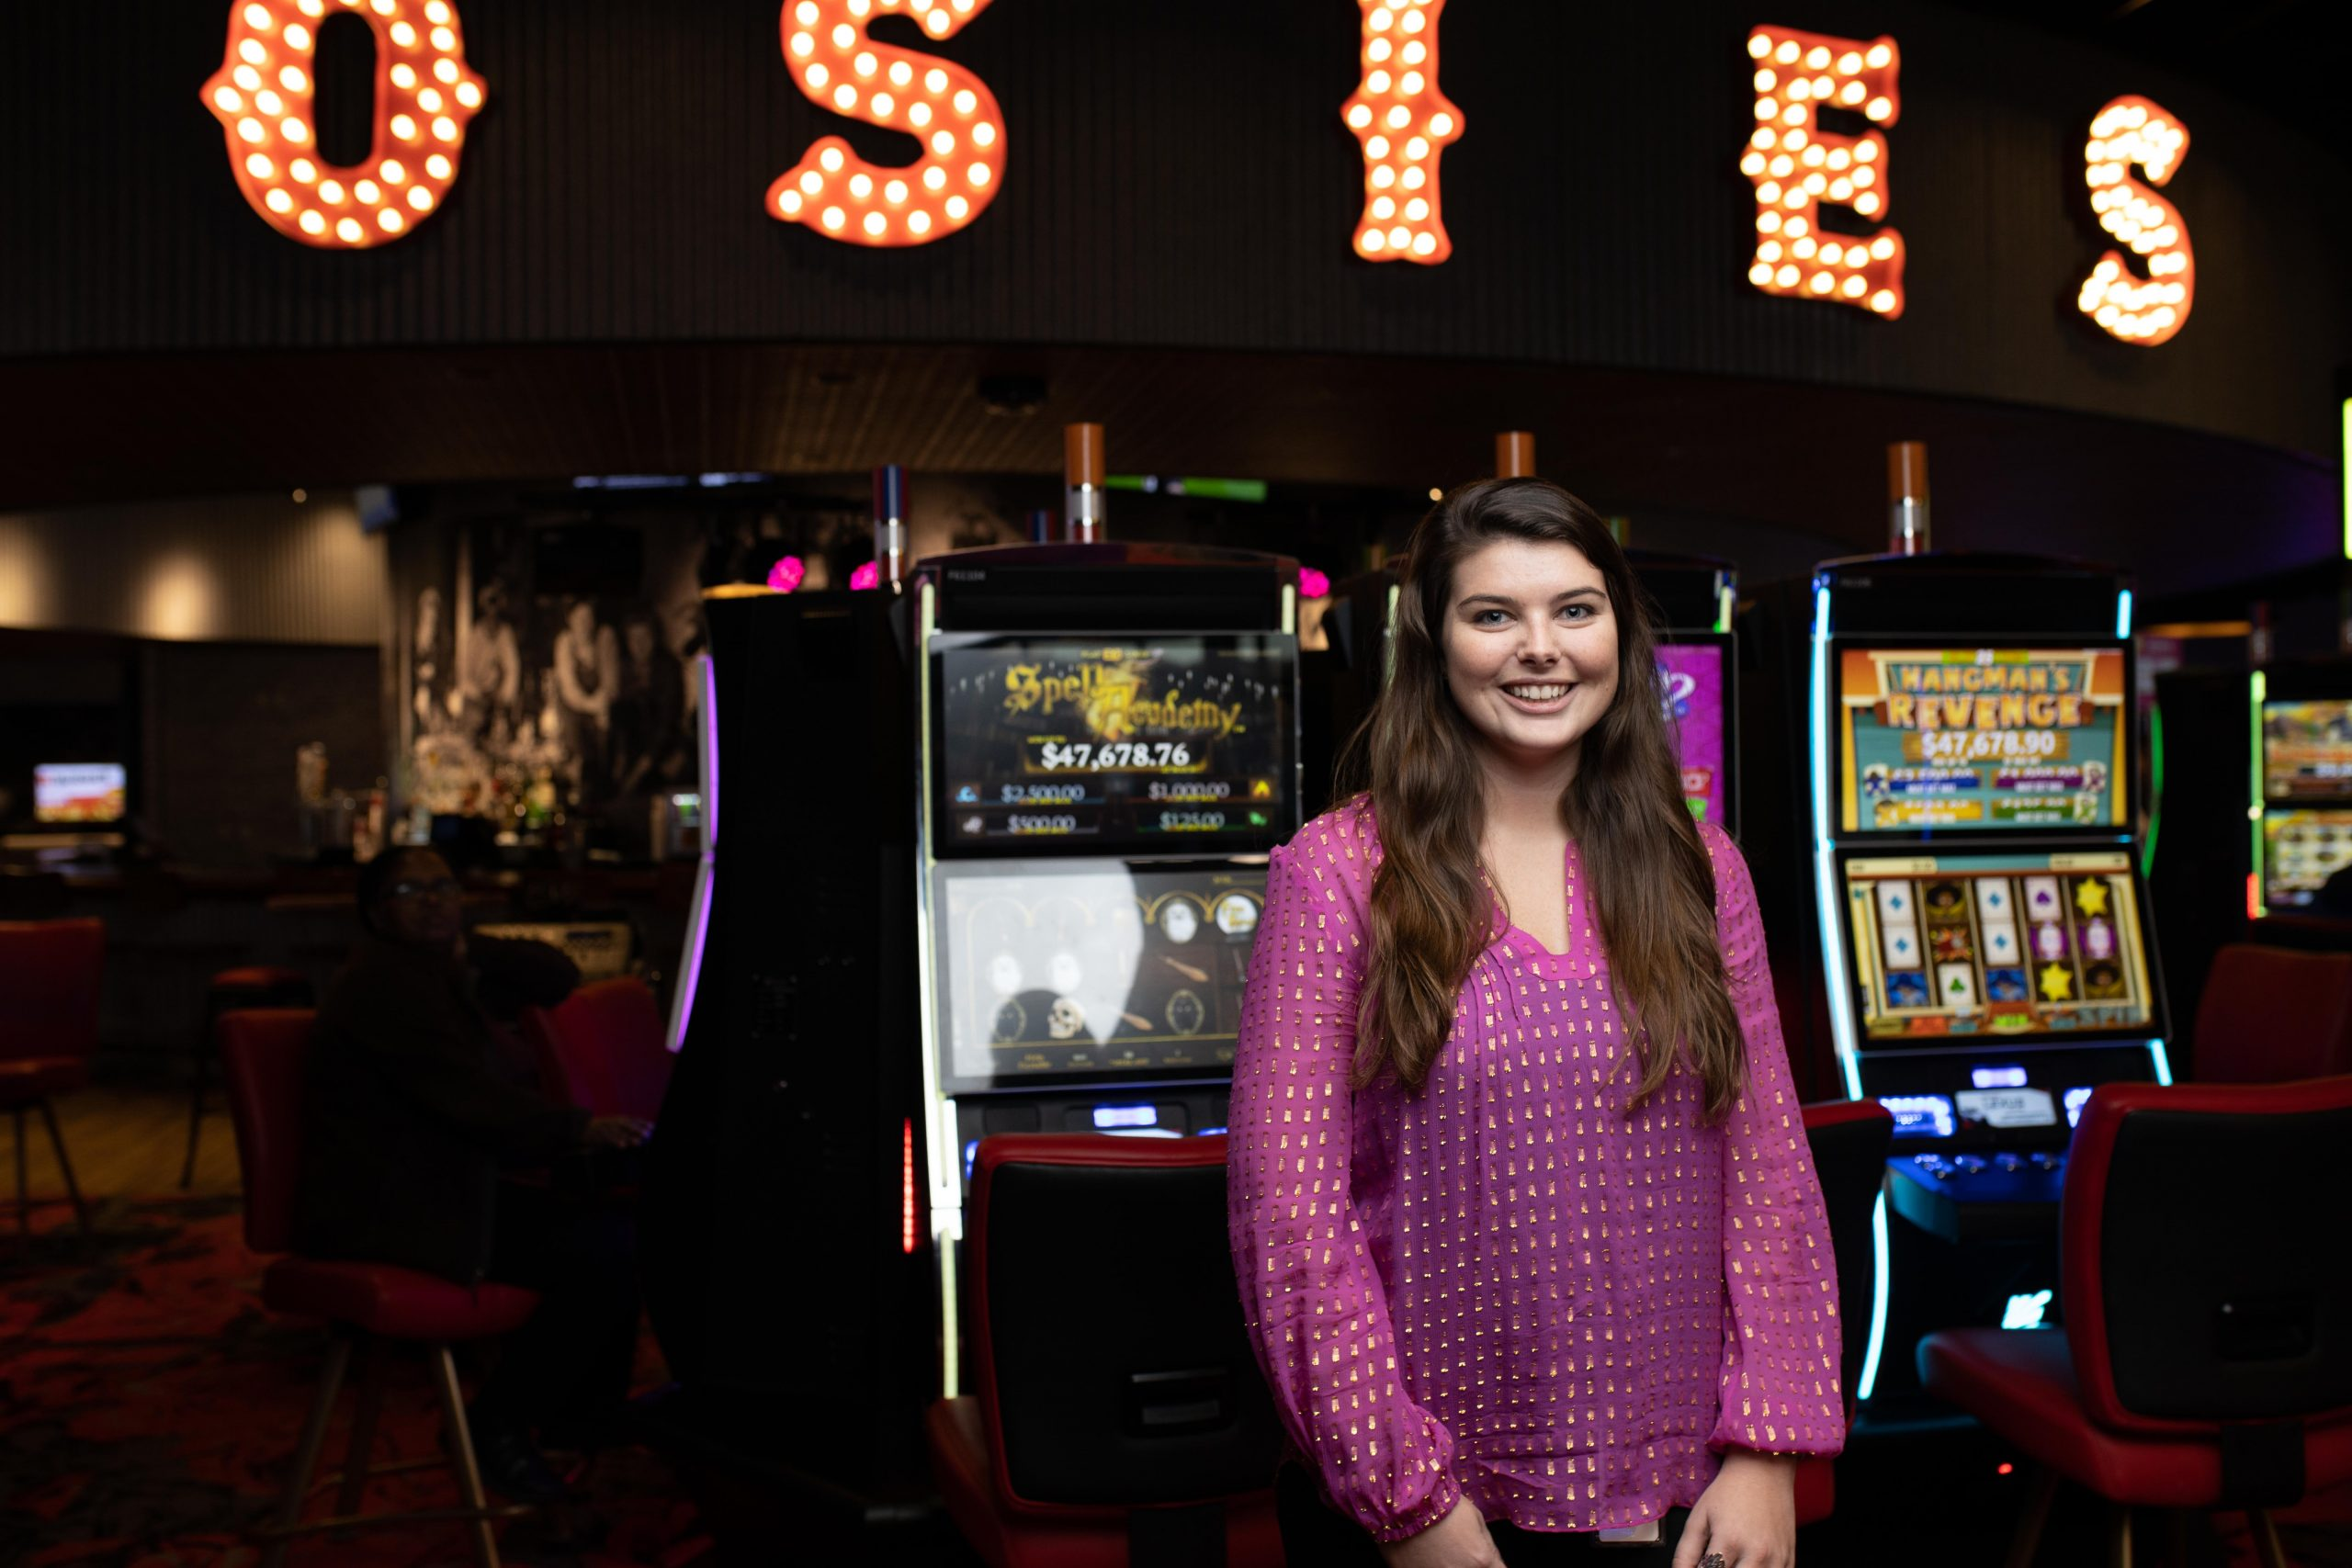 Rosies worker standing and smiling in front of gaming machines